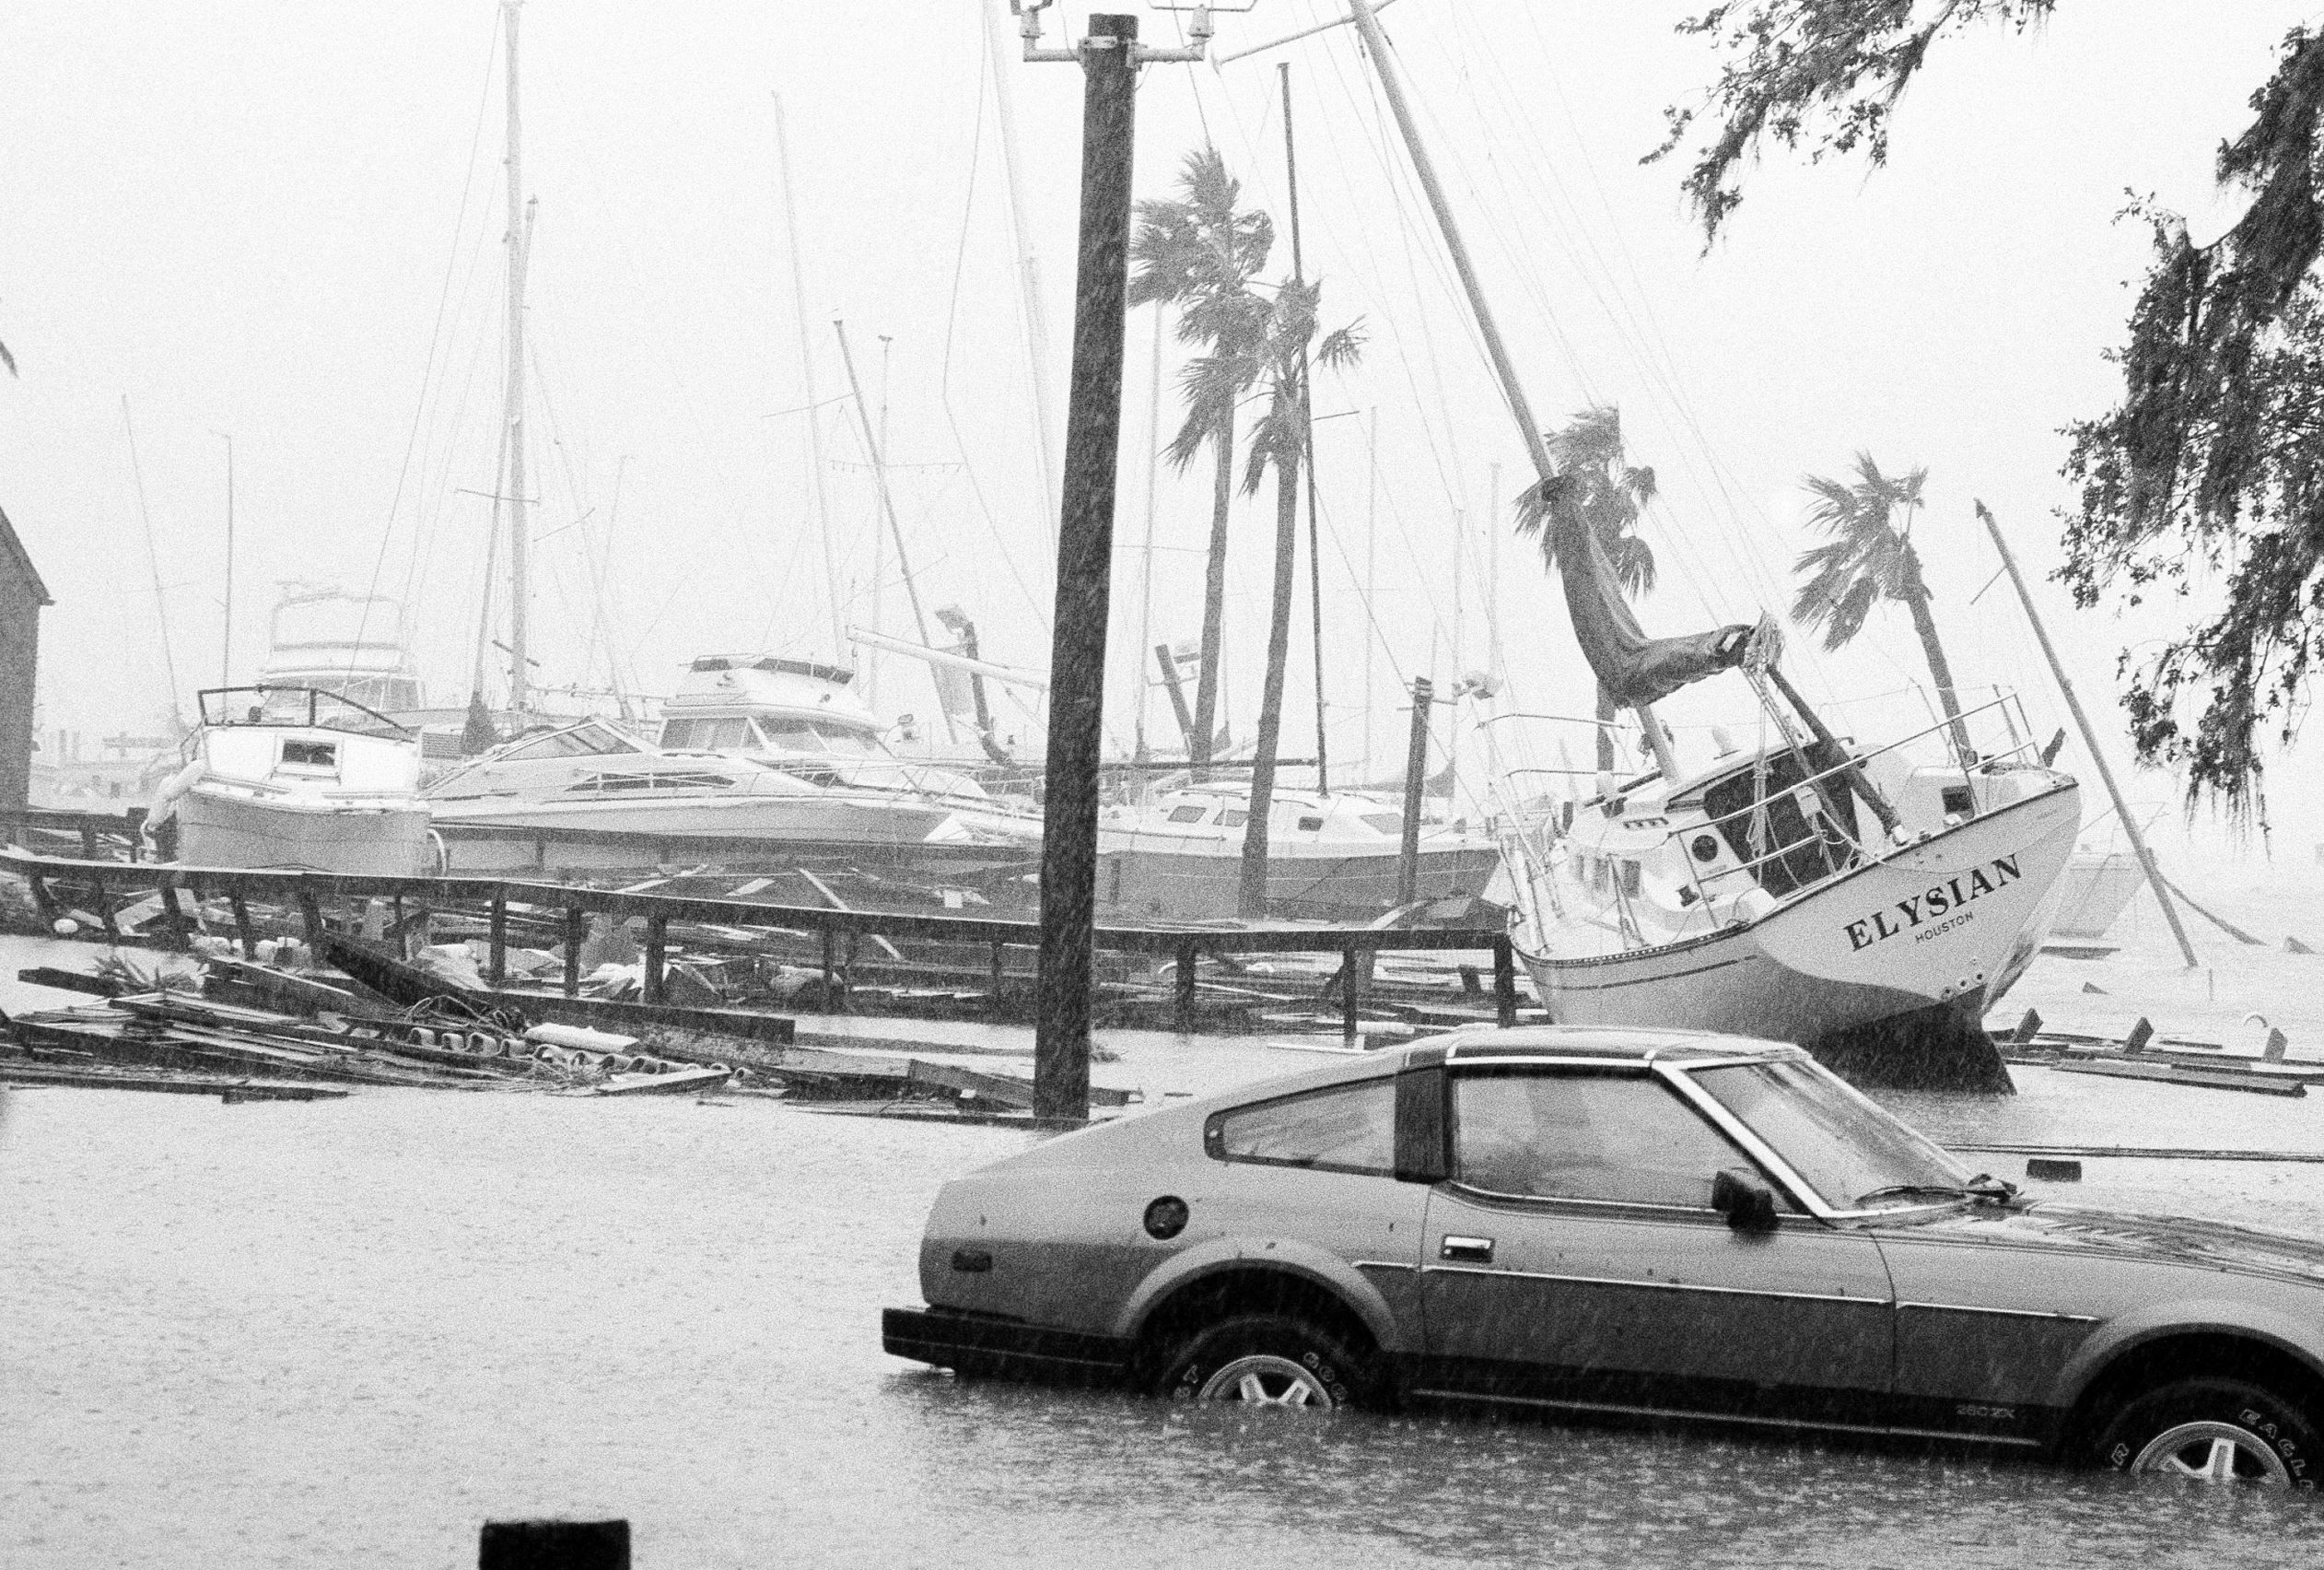 Hurricane Alicia 1983 By The Time It Reached The Western End Of Galveston Island In Texas Alicia Had B Hobby Photography Hobbies For Couples Hobbies For Men